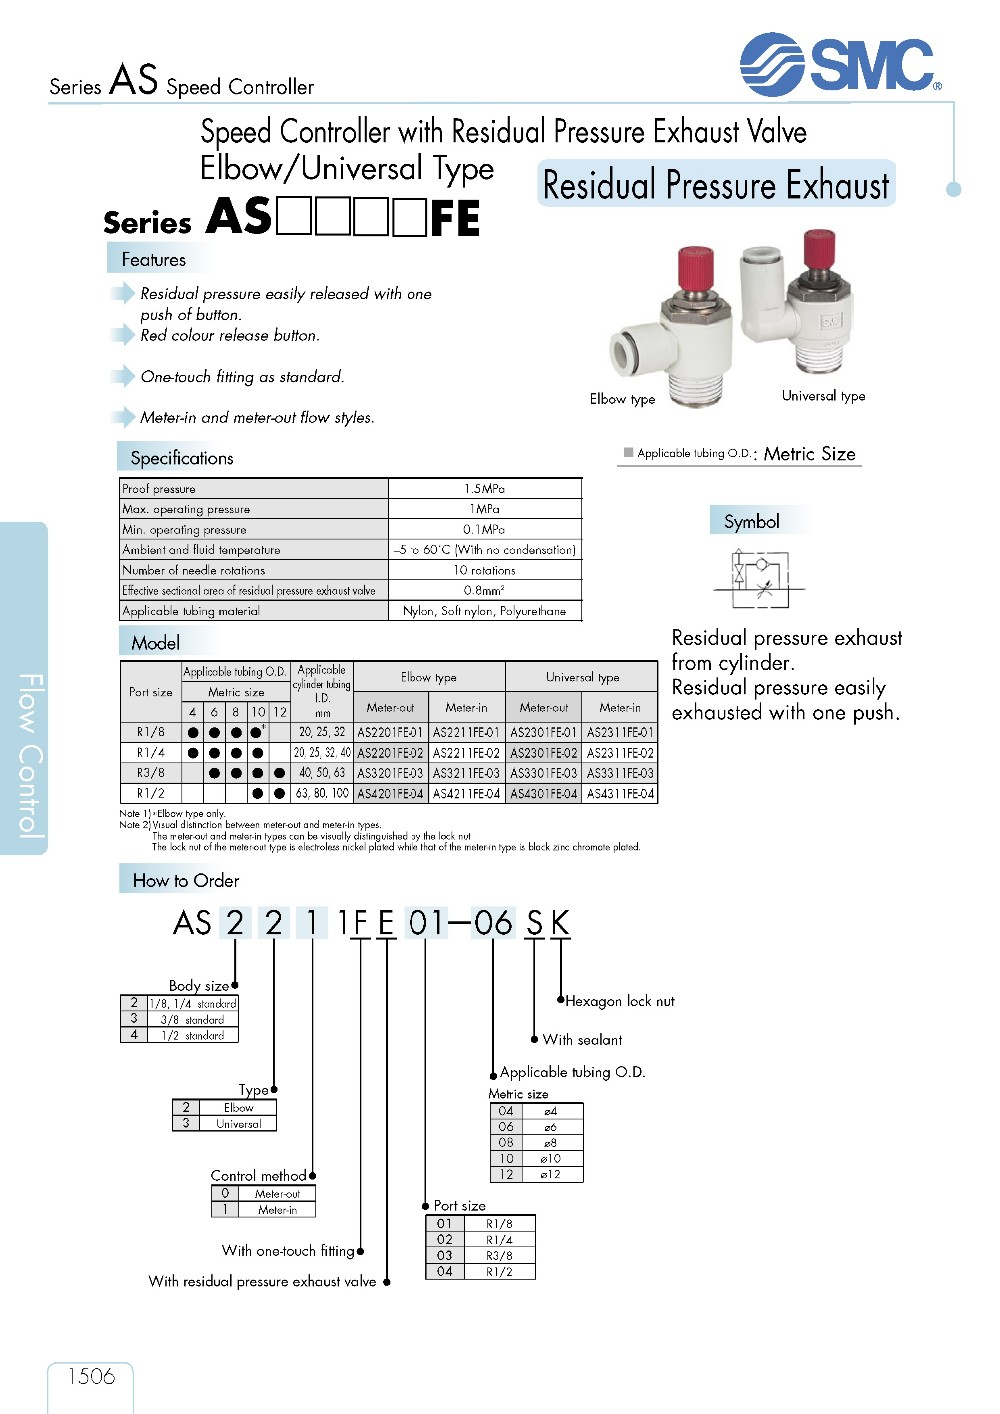 Brand New Japan Smc Genuine Speed Controller As1001f 06 A938 Jialing Atv Wiring Diagram 2006 Getsubject Aeproduct